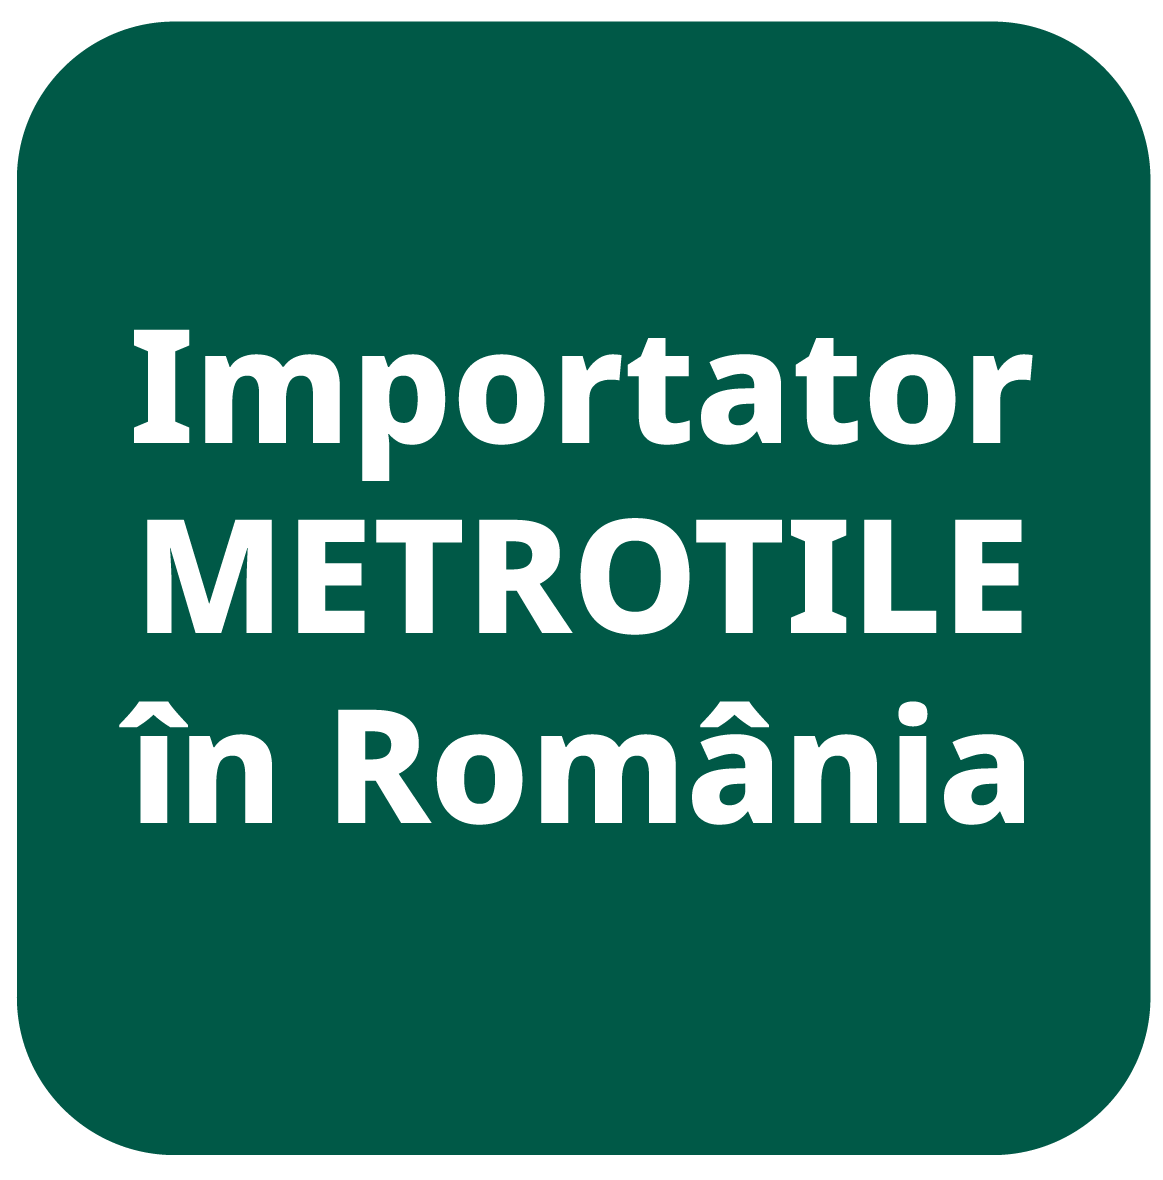 Importator Metrotile in Romania